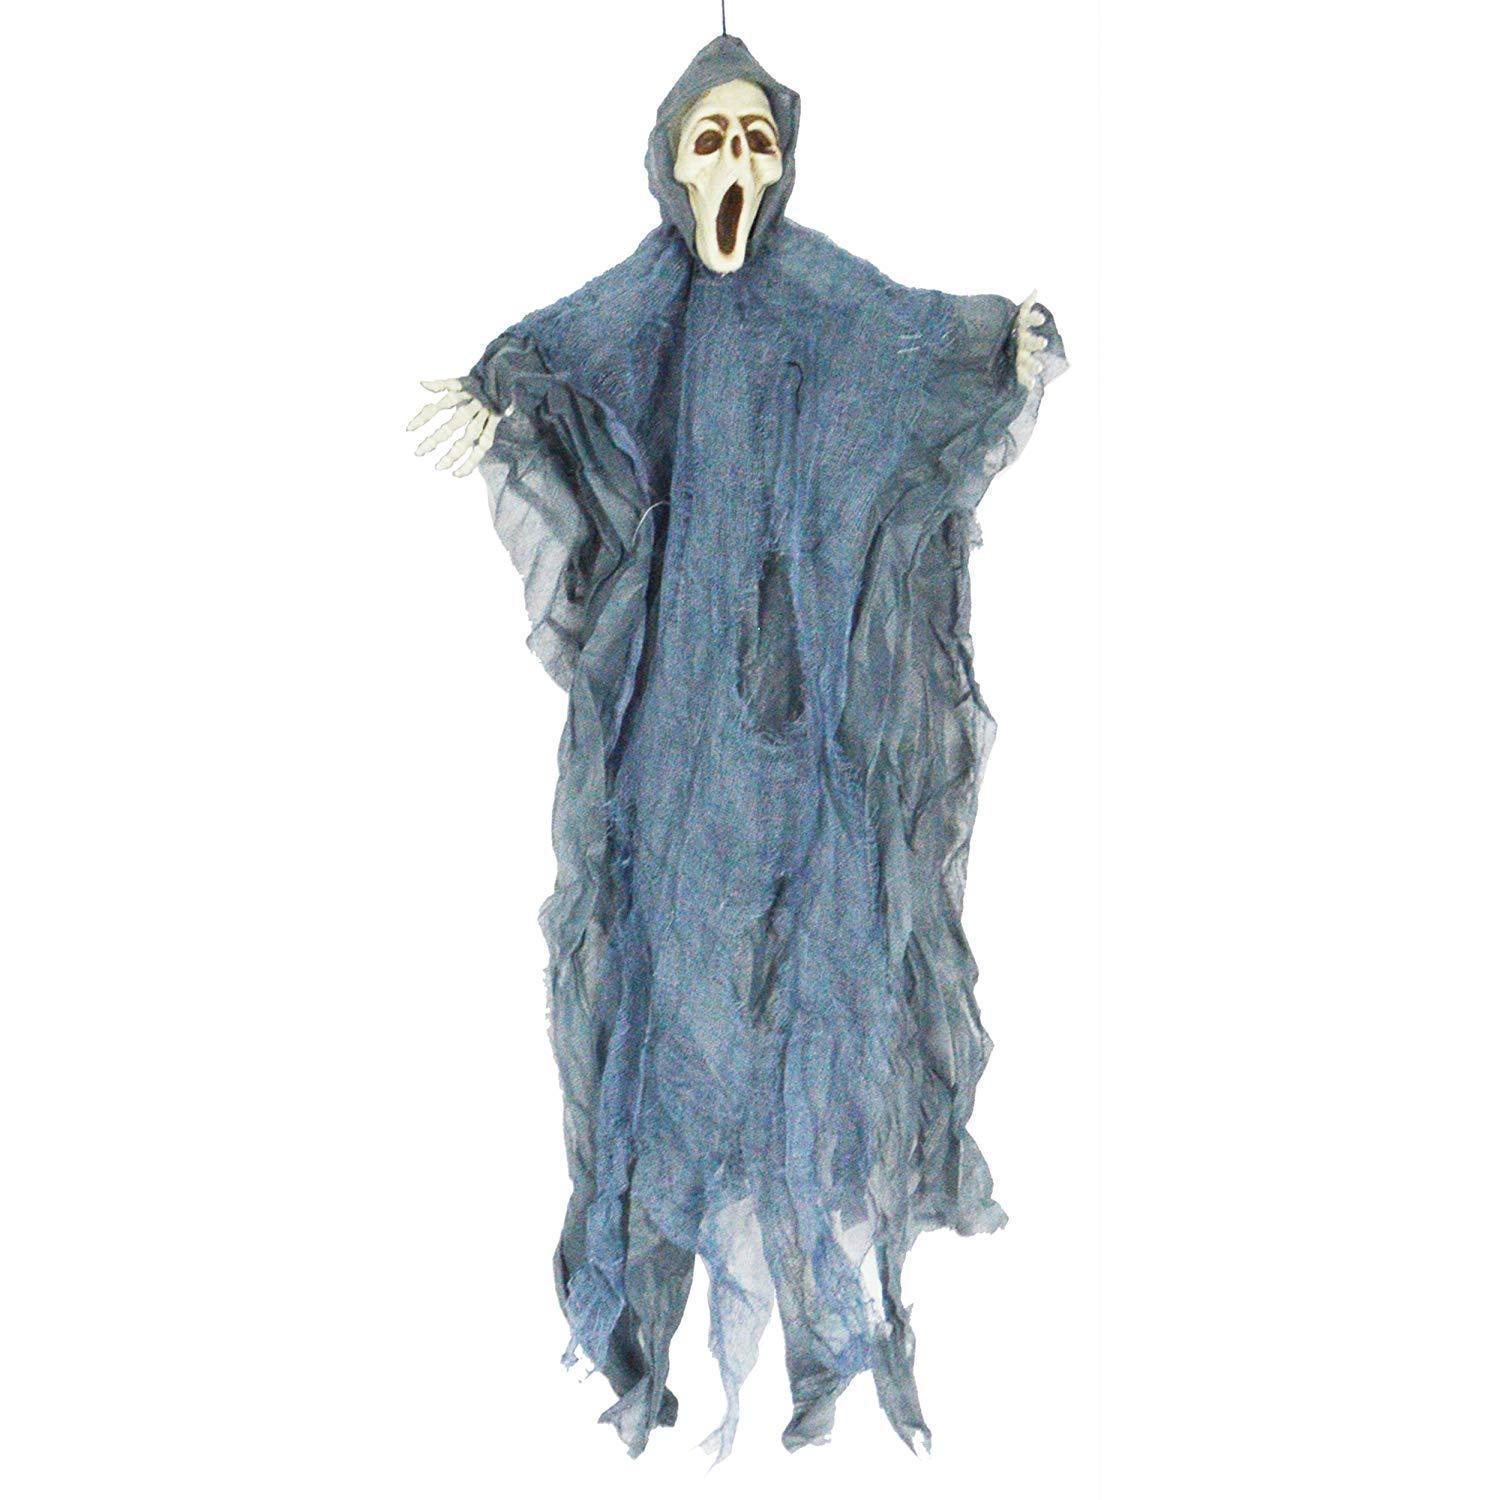 Halloween Hanging Witch Prop Animated Skeleton Ghost Scary Yard Outdoor Decor